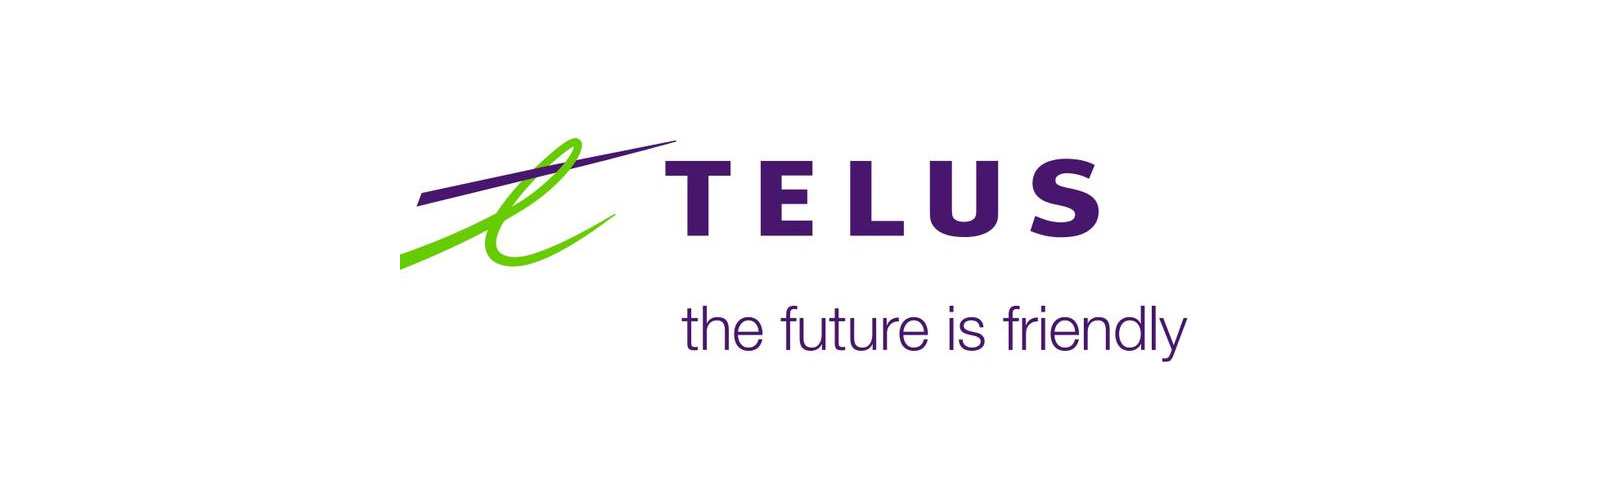 Samsung has been selected as a 5G telecom equipment supplier by Telus